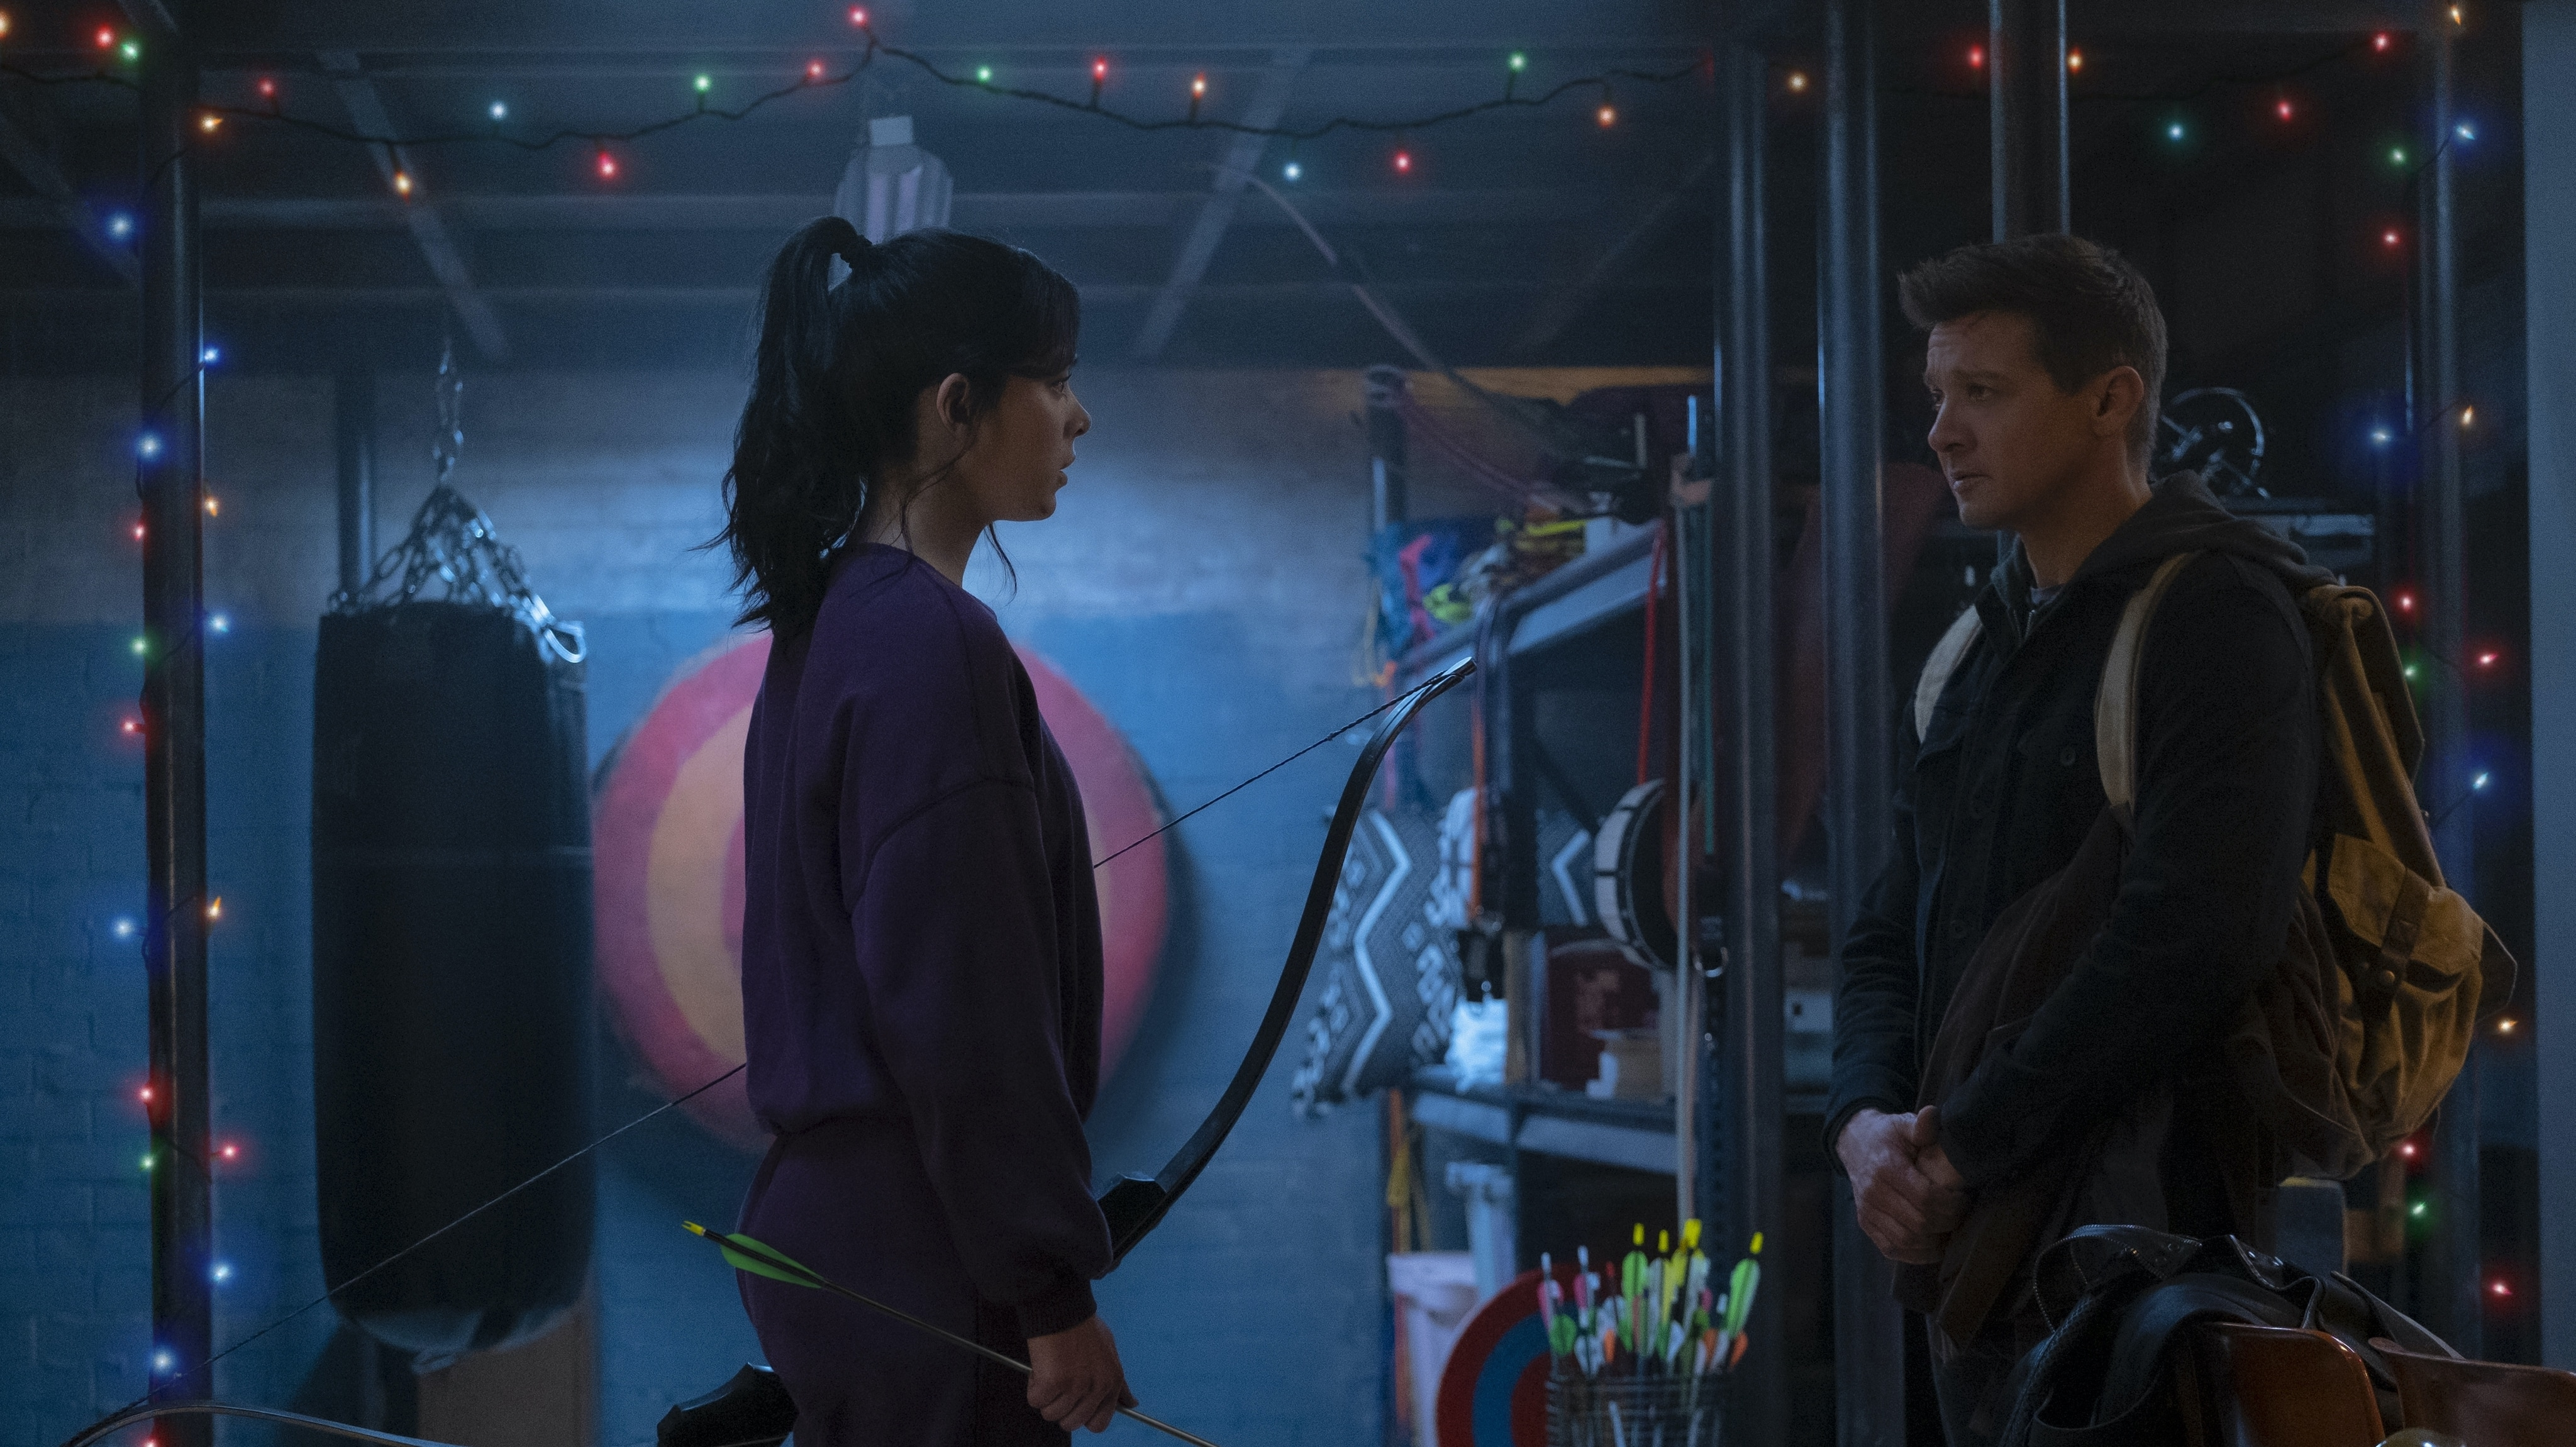 (L-R): Kate Bishop (Hailee Steinfeld) and Hawkeye/Clint Barton (Jeremy Renner) in Marvel Studios' HAWKEYE, exclusively on Disney+. Photo by Chuck Zlotnick. ©Marvel Studios 2021. All Rights Reserved.